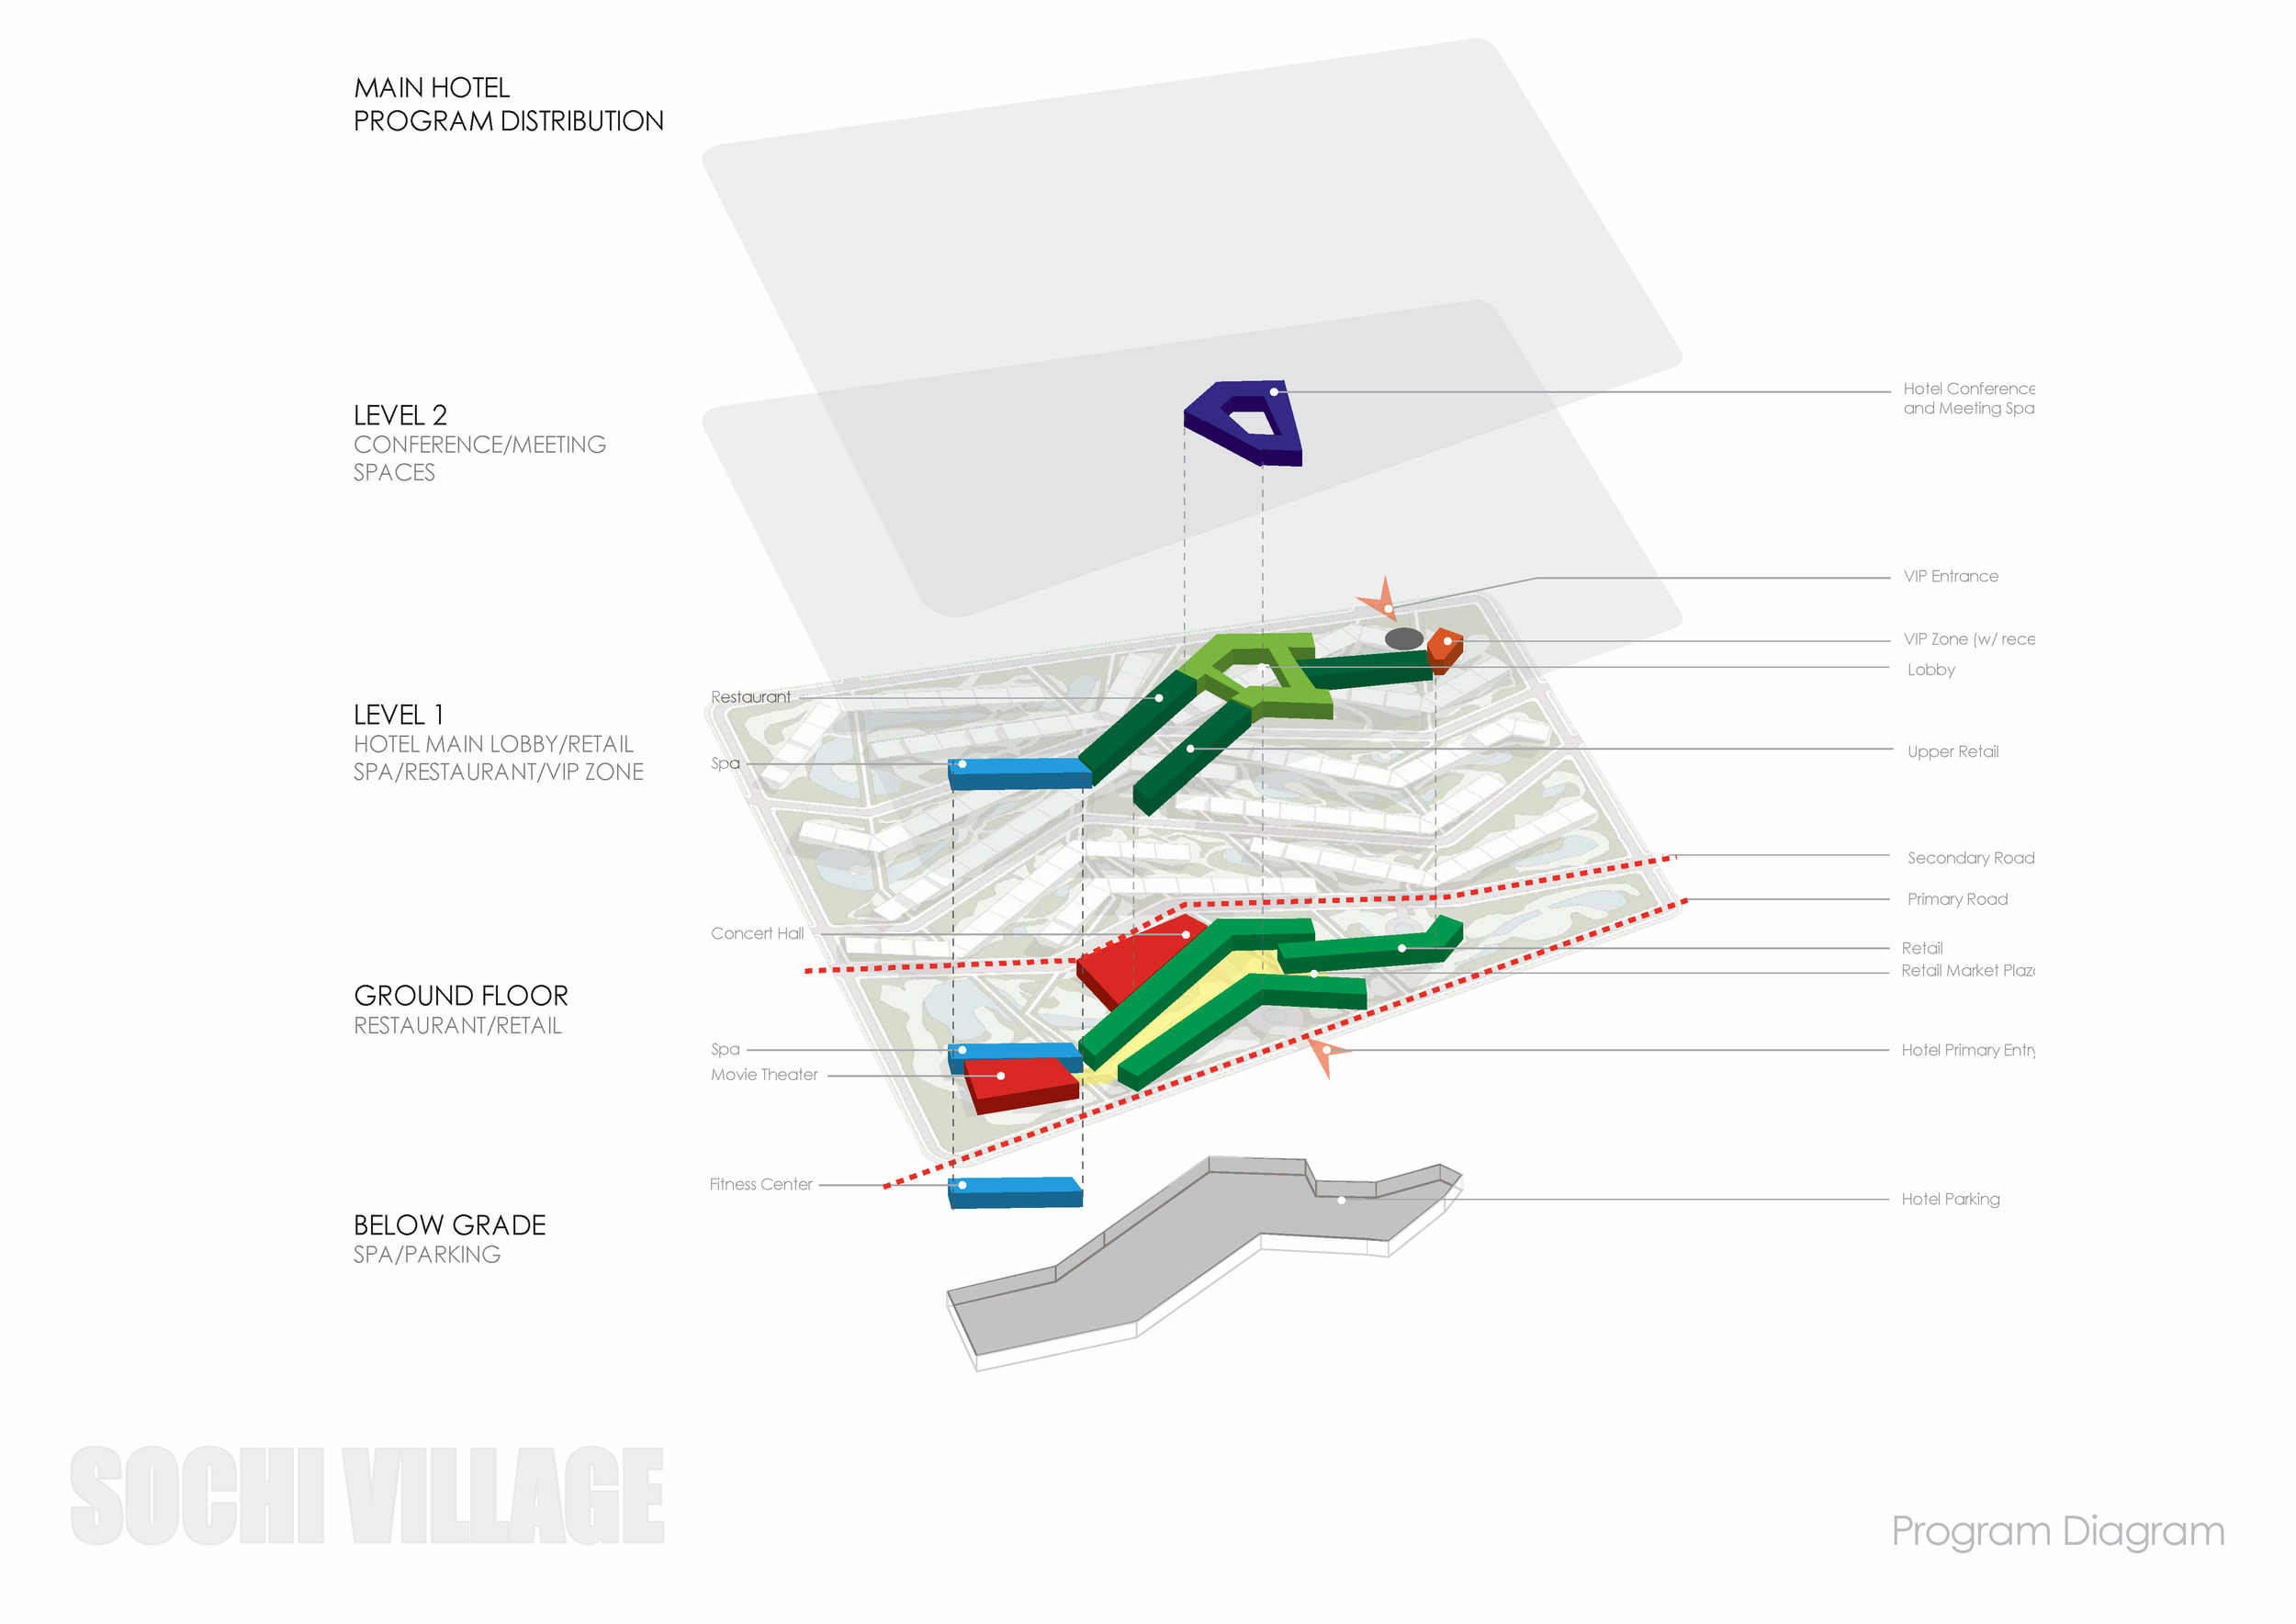 Sochi Olympic Village Program Diagram